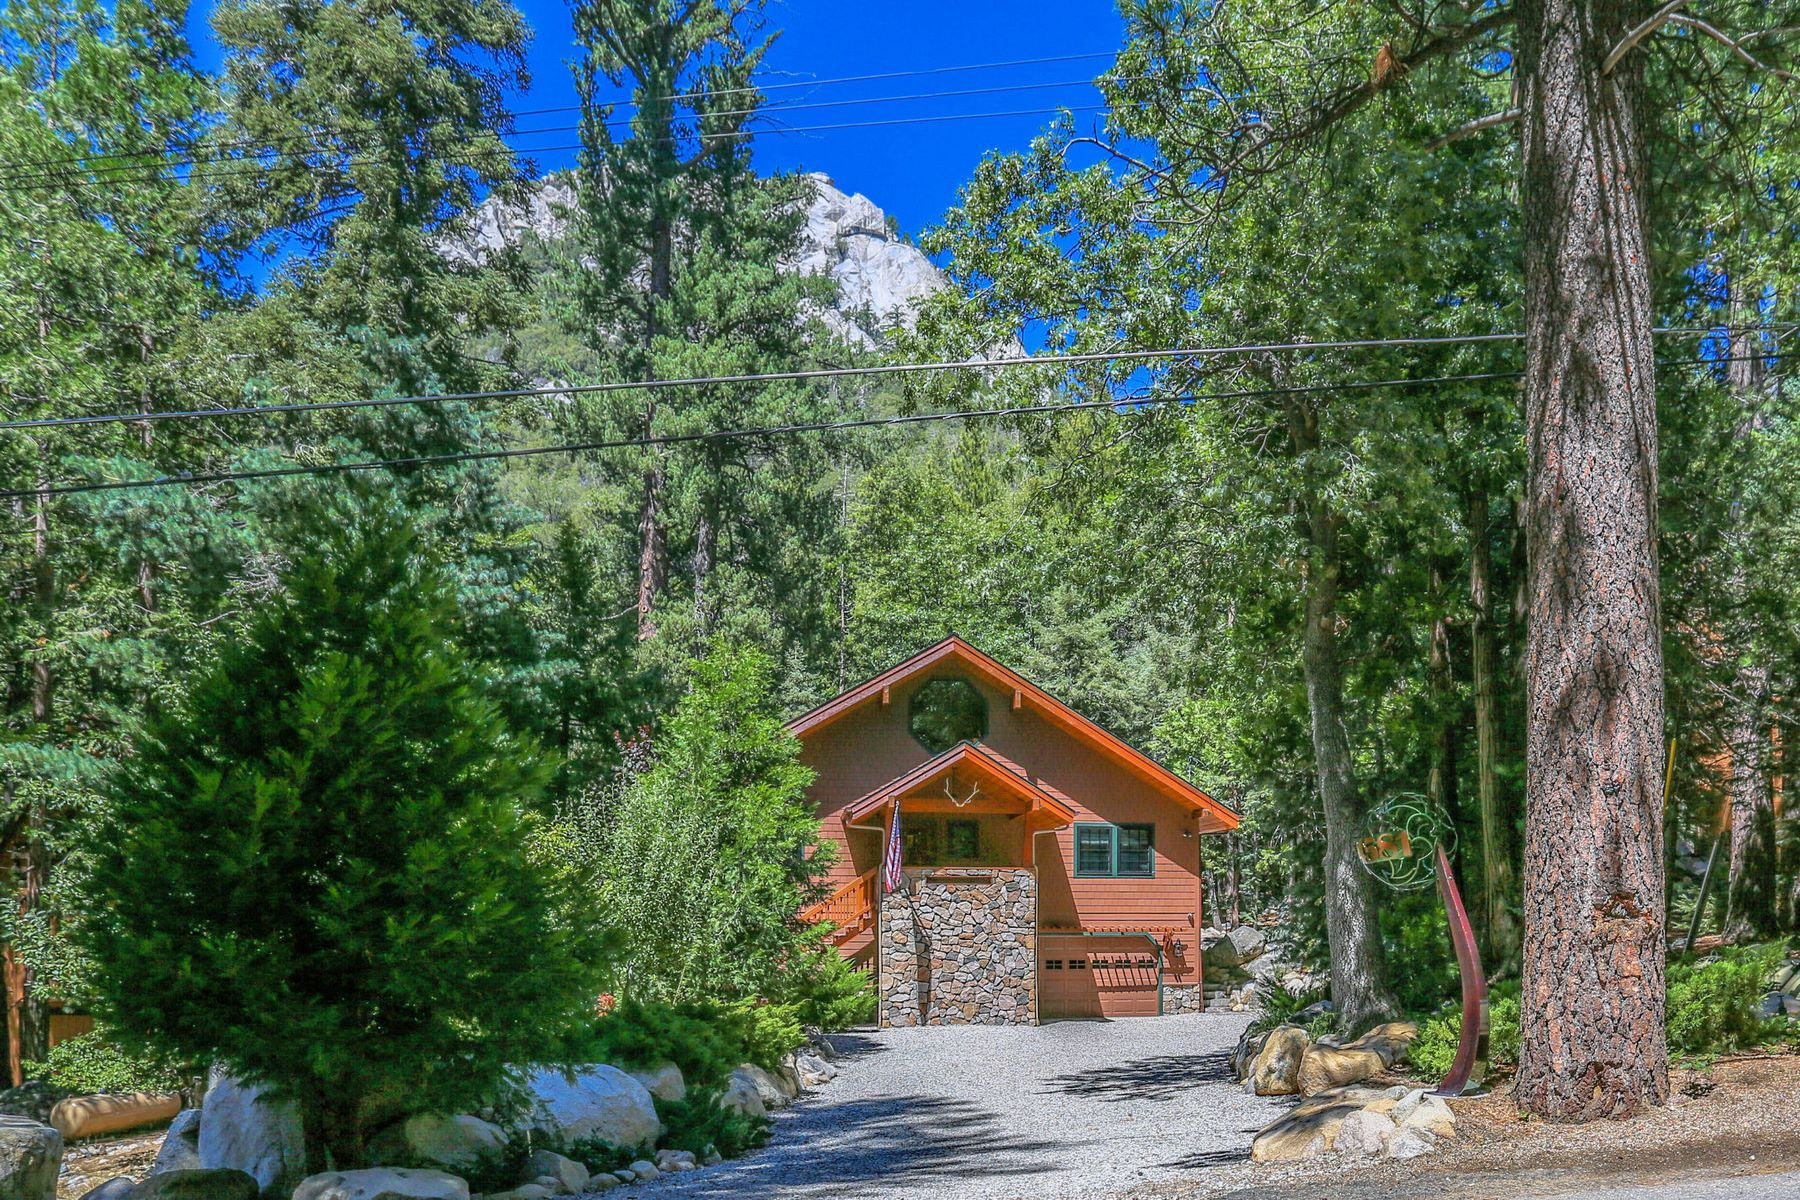 Single Family Homes for Sale at 24581 Fern Valley Road Idyllwild, California 92549 United States